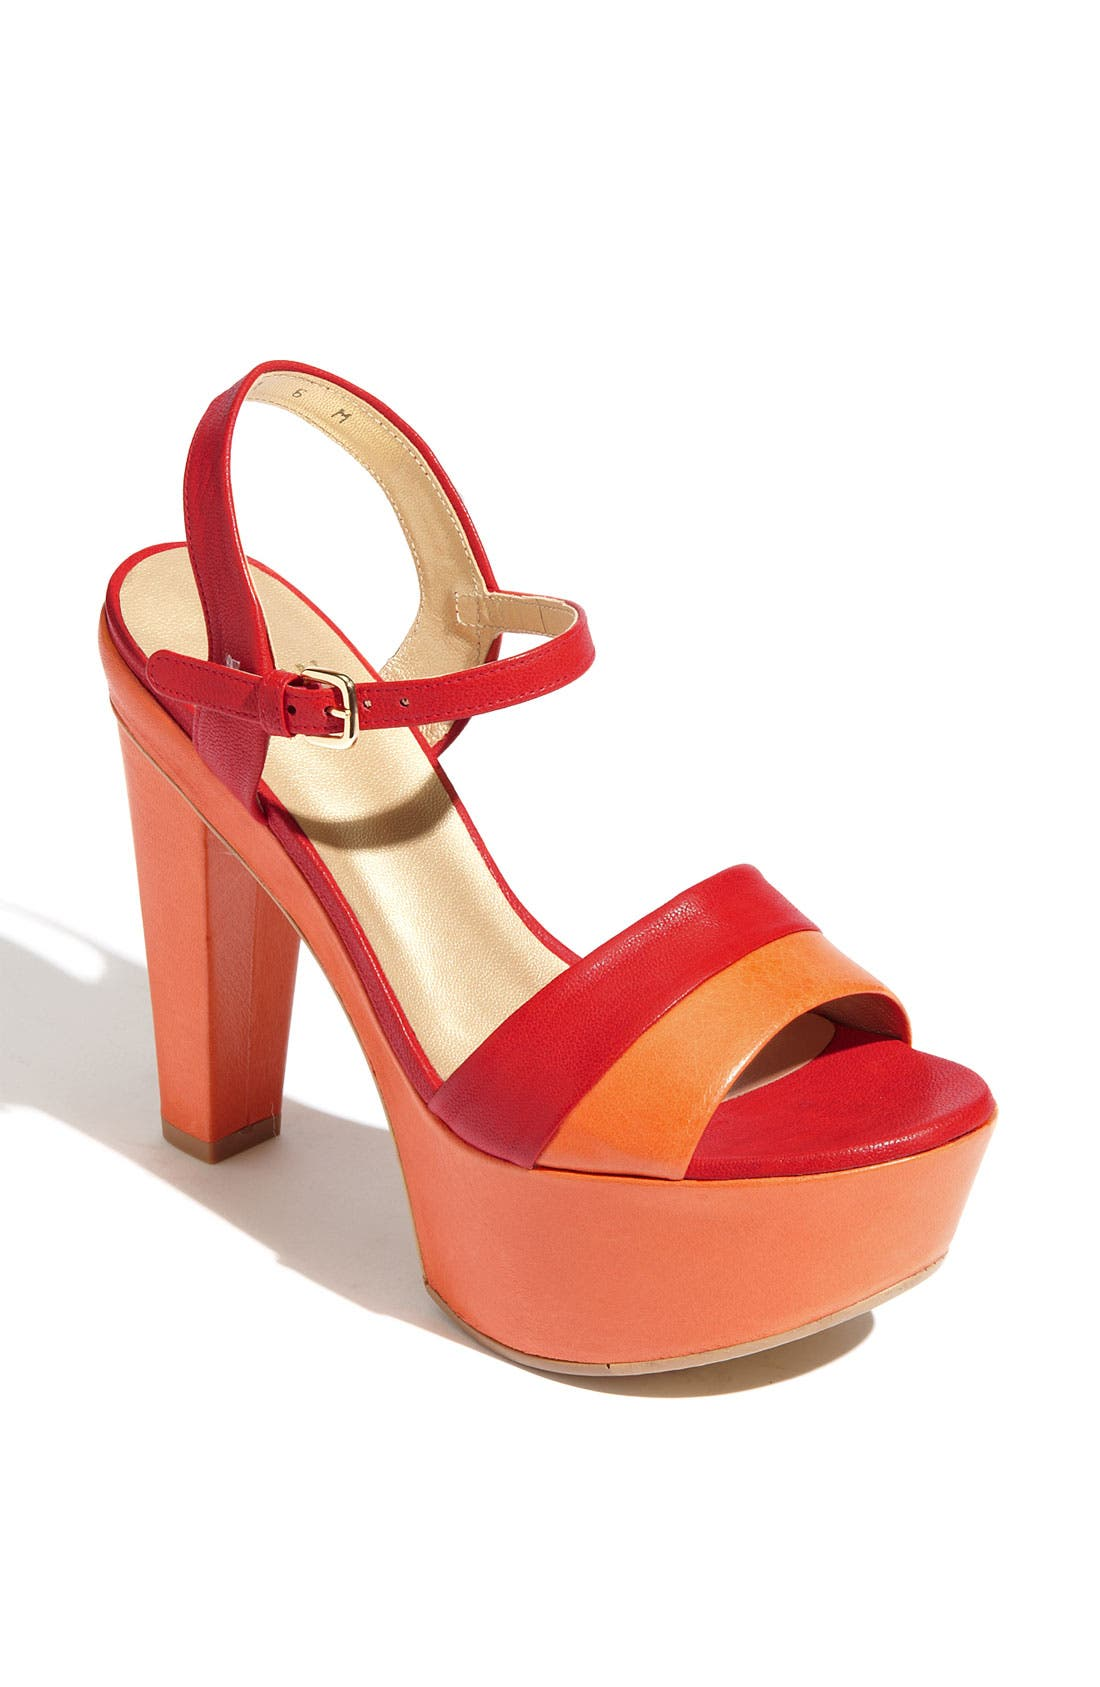 Alternate Image 1 Selected - Stuart Weitzman 'Once' Sandal